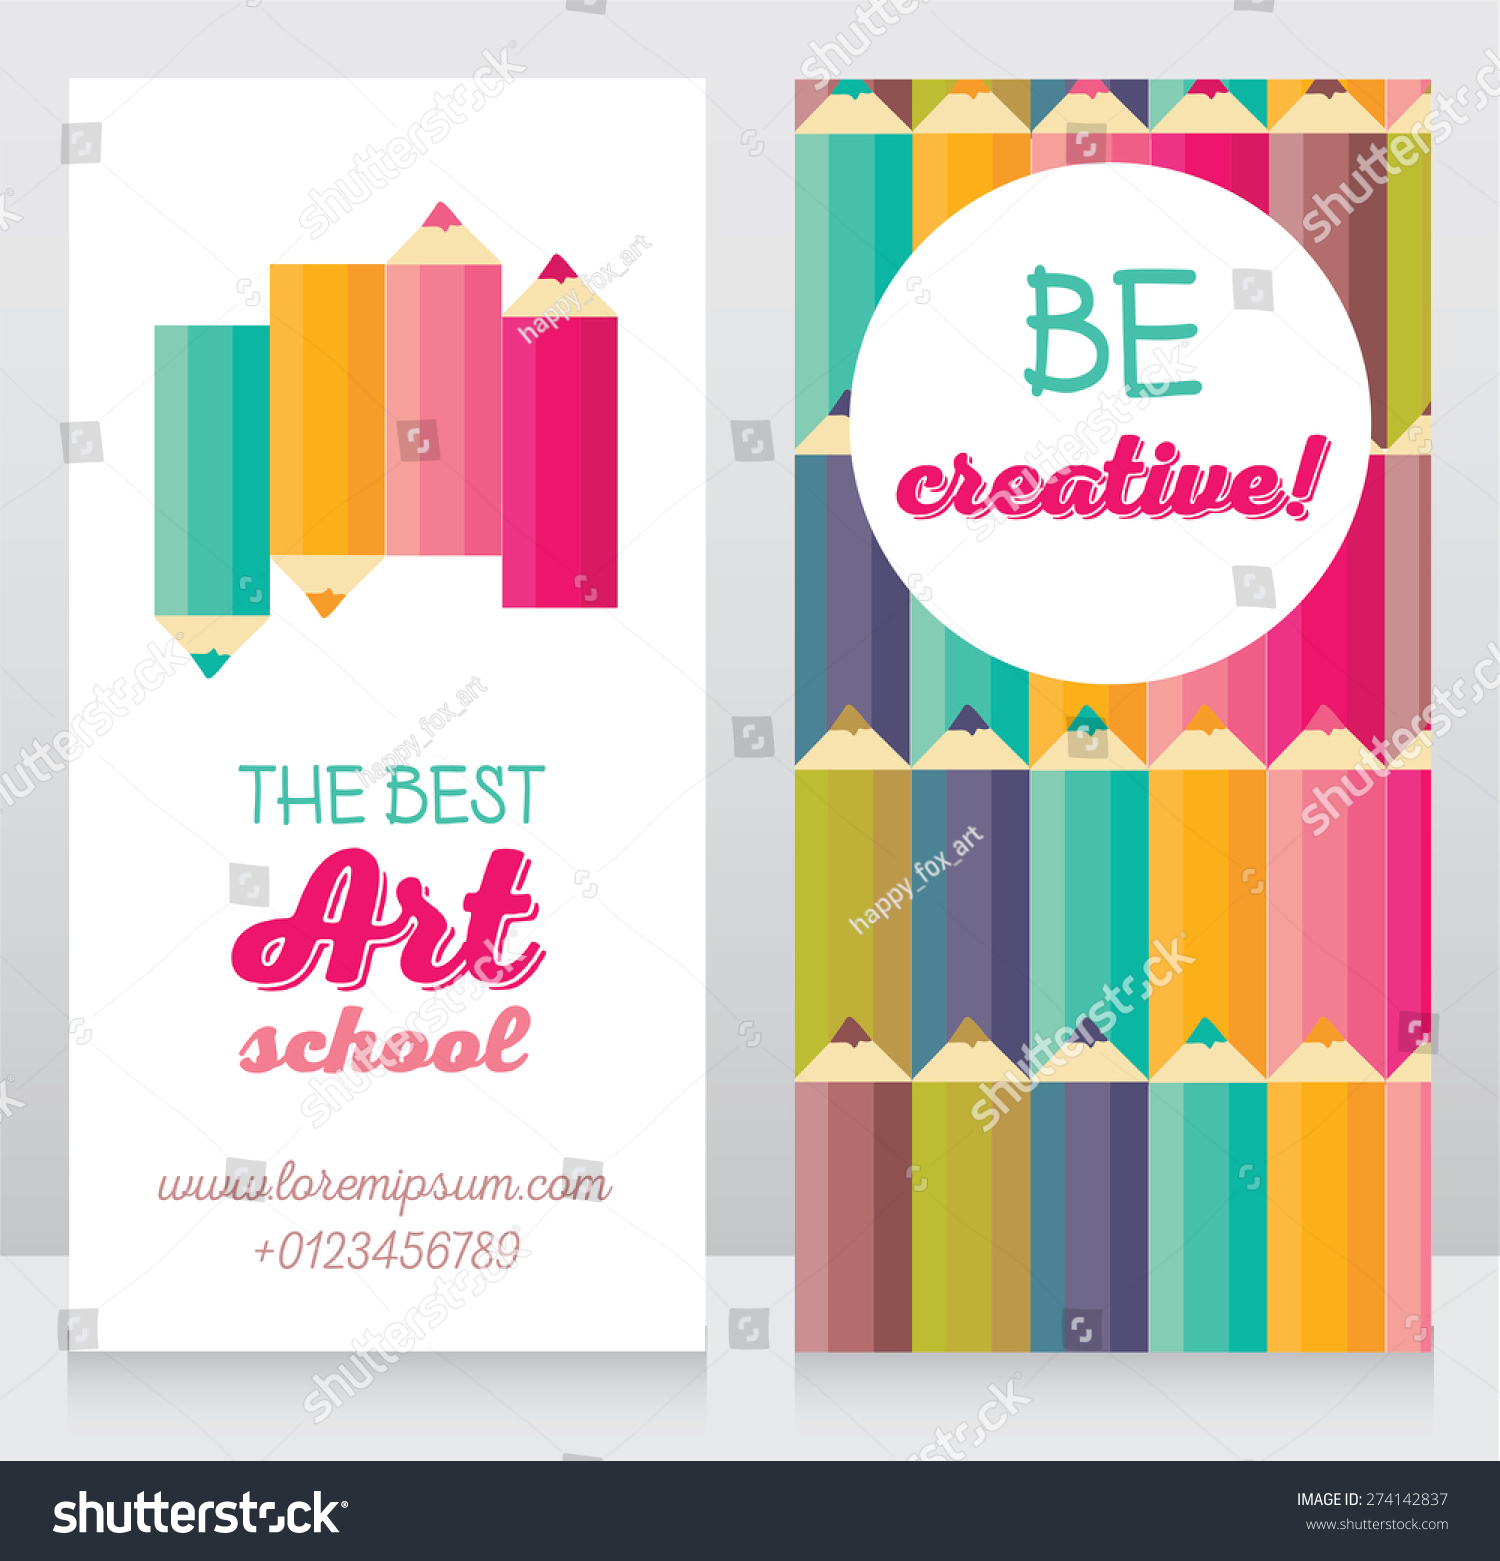 Business Cards Templates Art School Can Stock Vector 274142837 ...